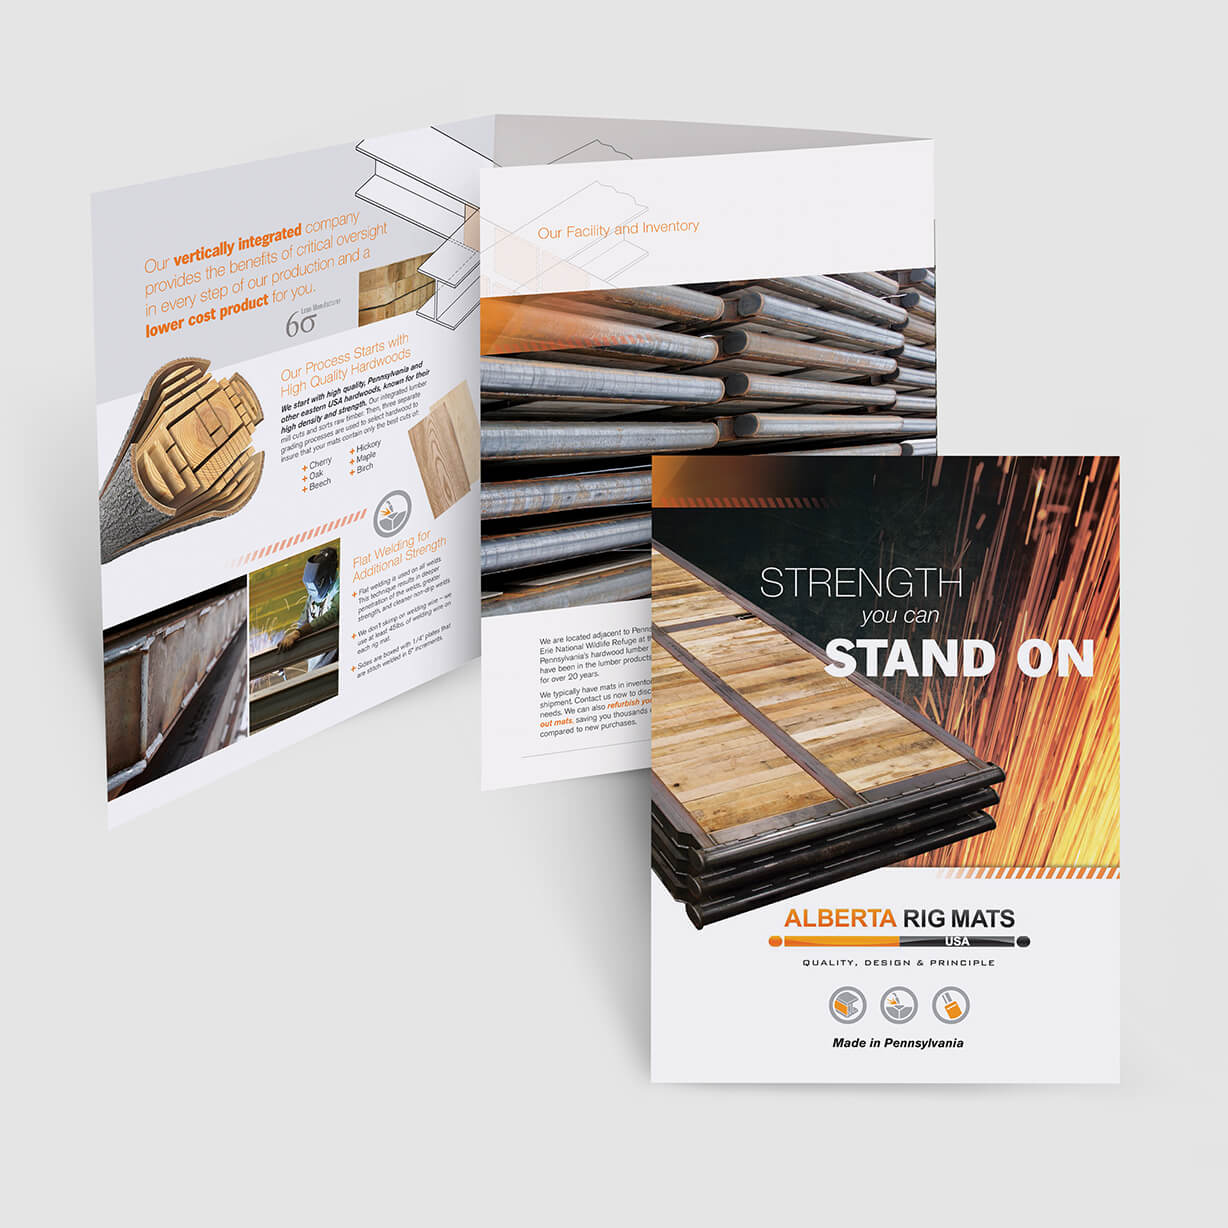 Industrial pocket folder design with heavy-duty steel and wood products